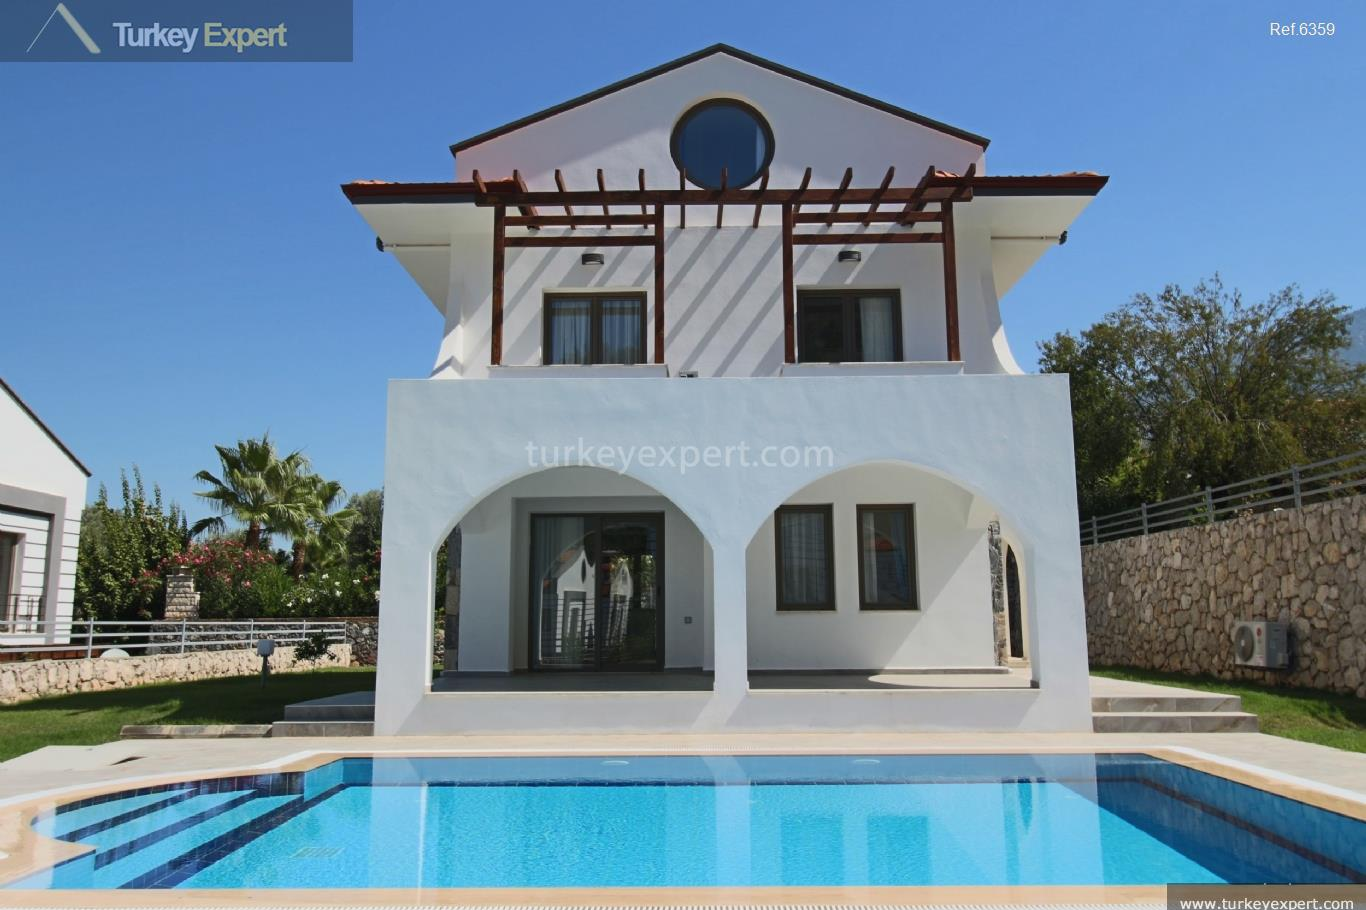 1charming holiday home in fethiye1